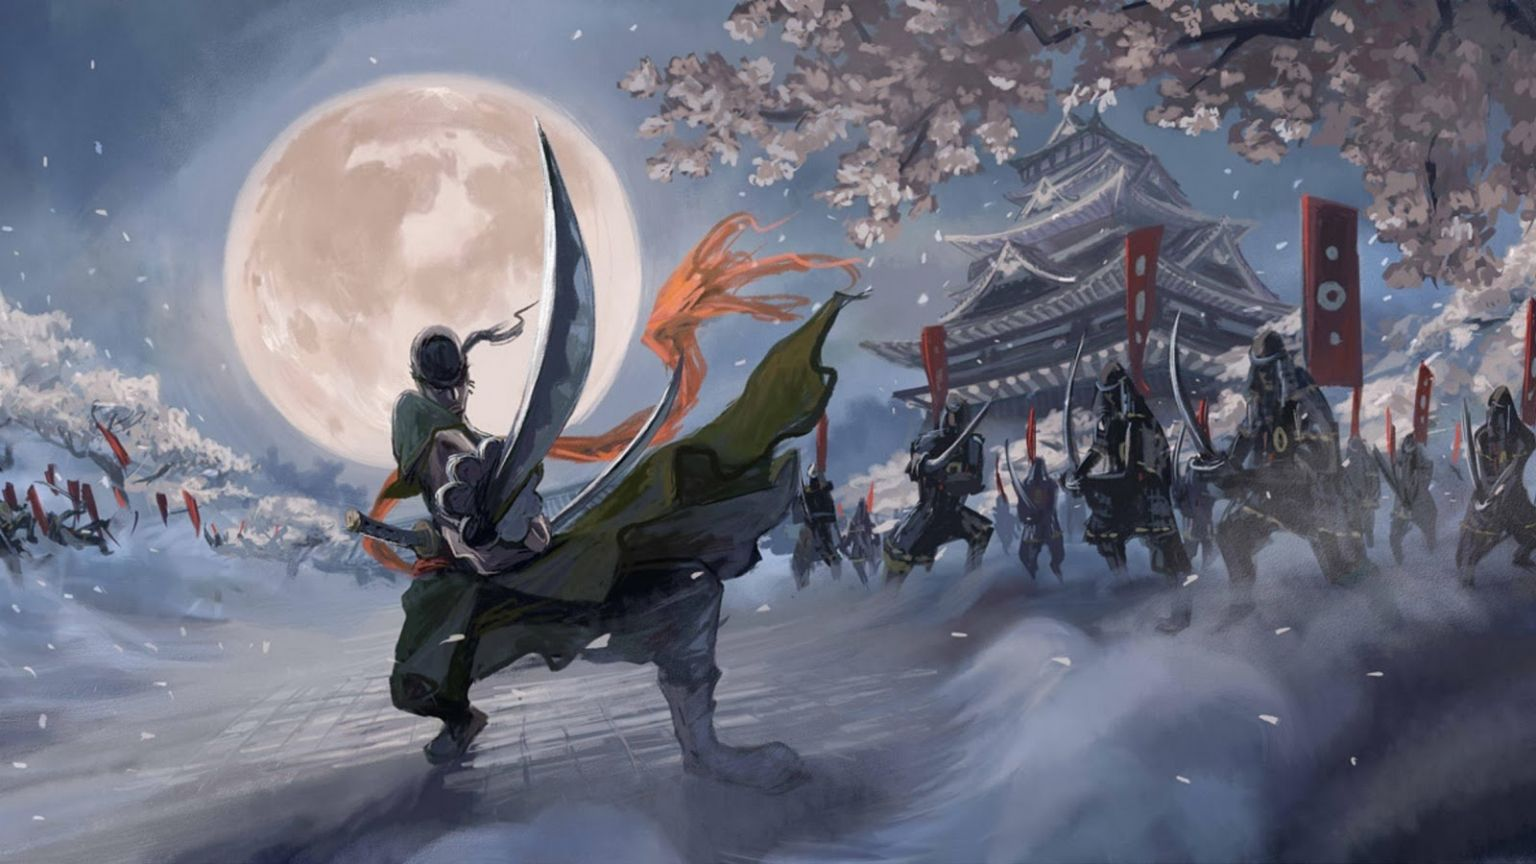 Free download Roronoa Zoro Samurai One Piece 24 Wallpapers HD [1600x900] for your Desktop, Mobile & Tablet